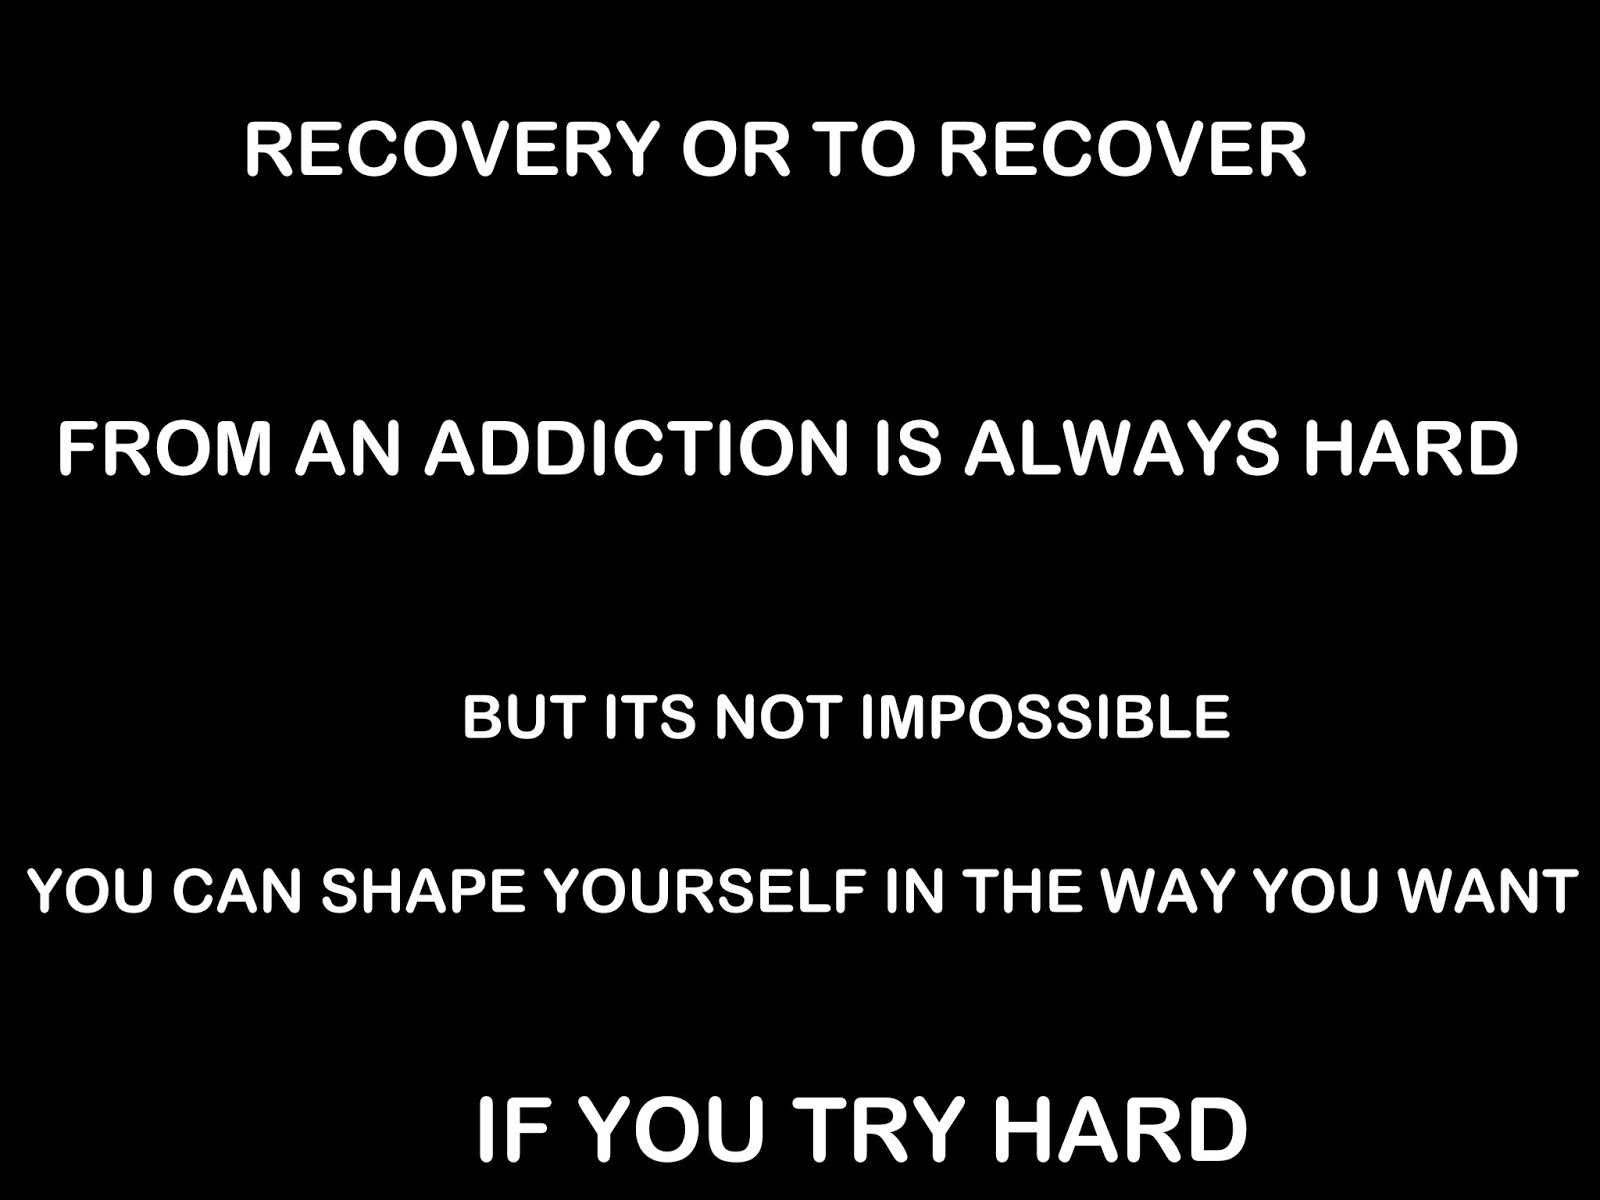 Inspirational Recovery Quotes Recovery Quotes In Images  Shubhz Quotes